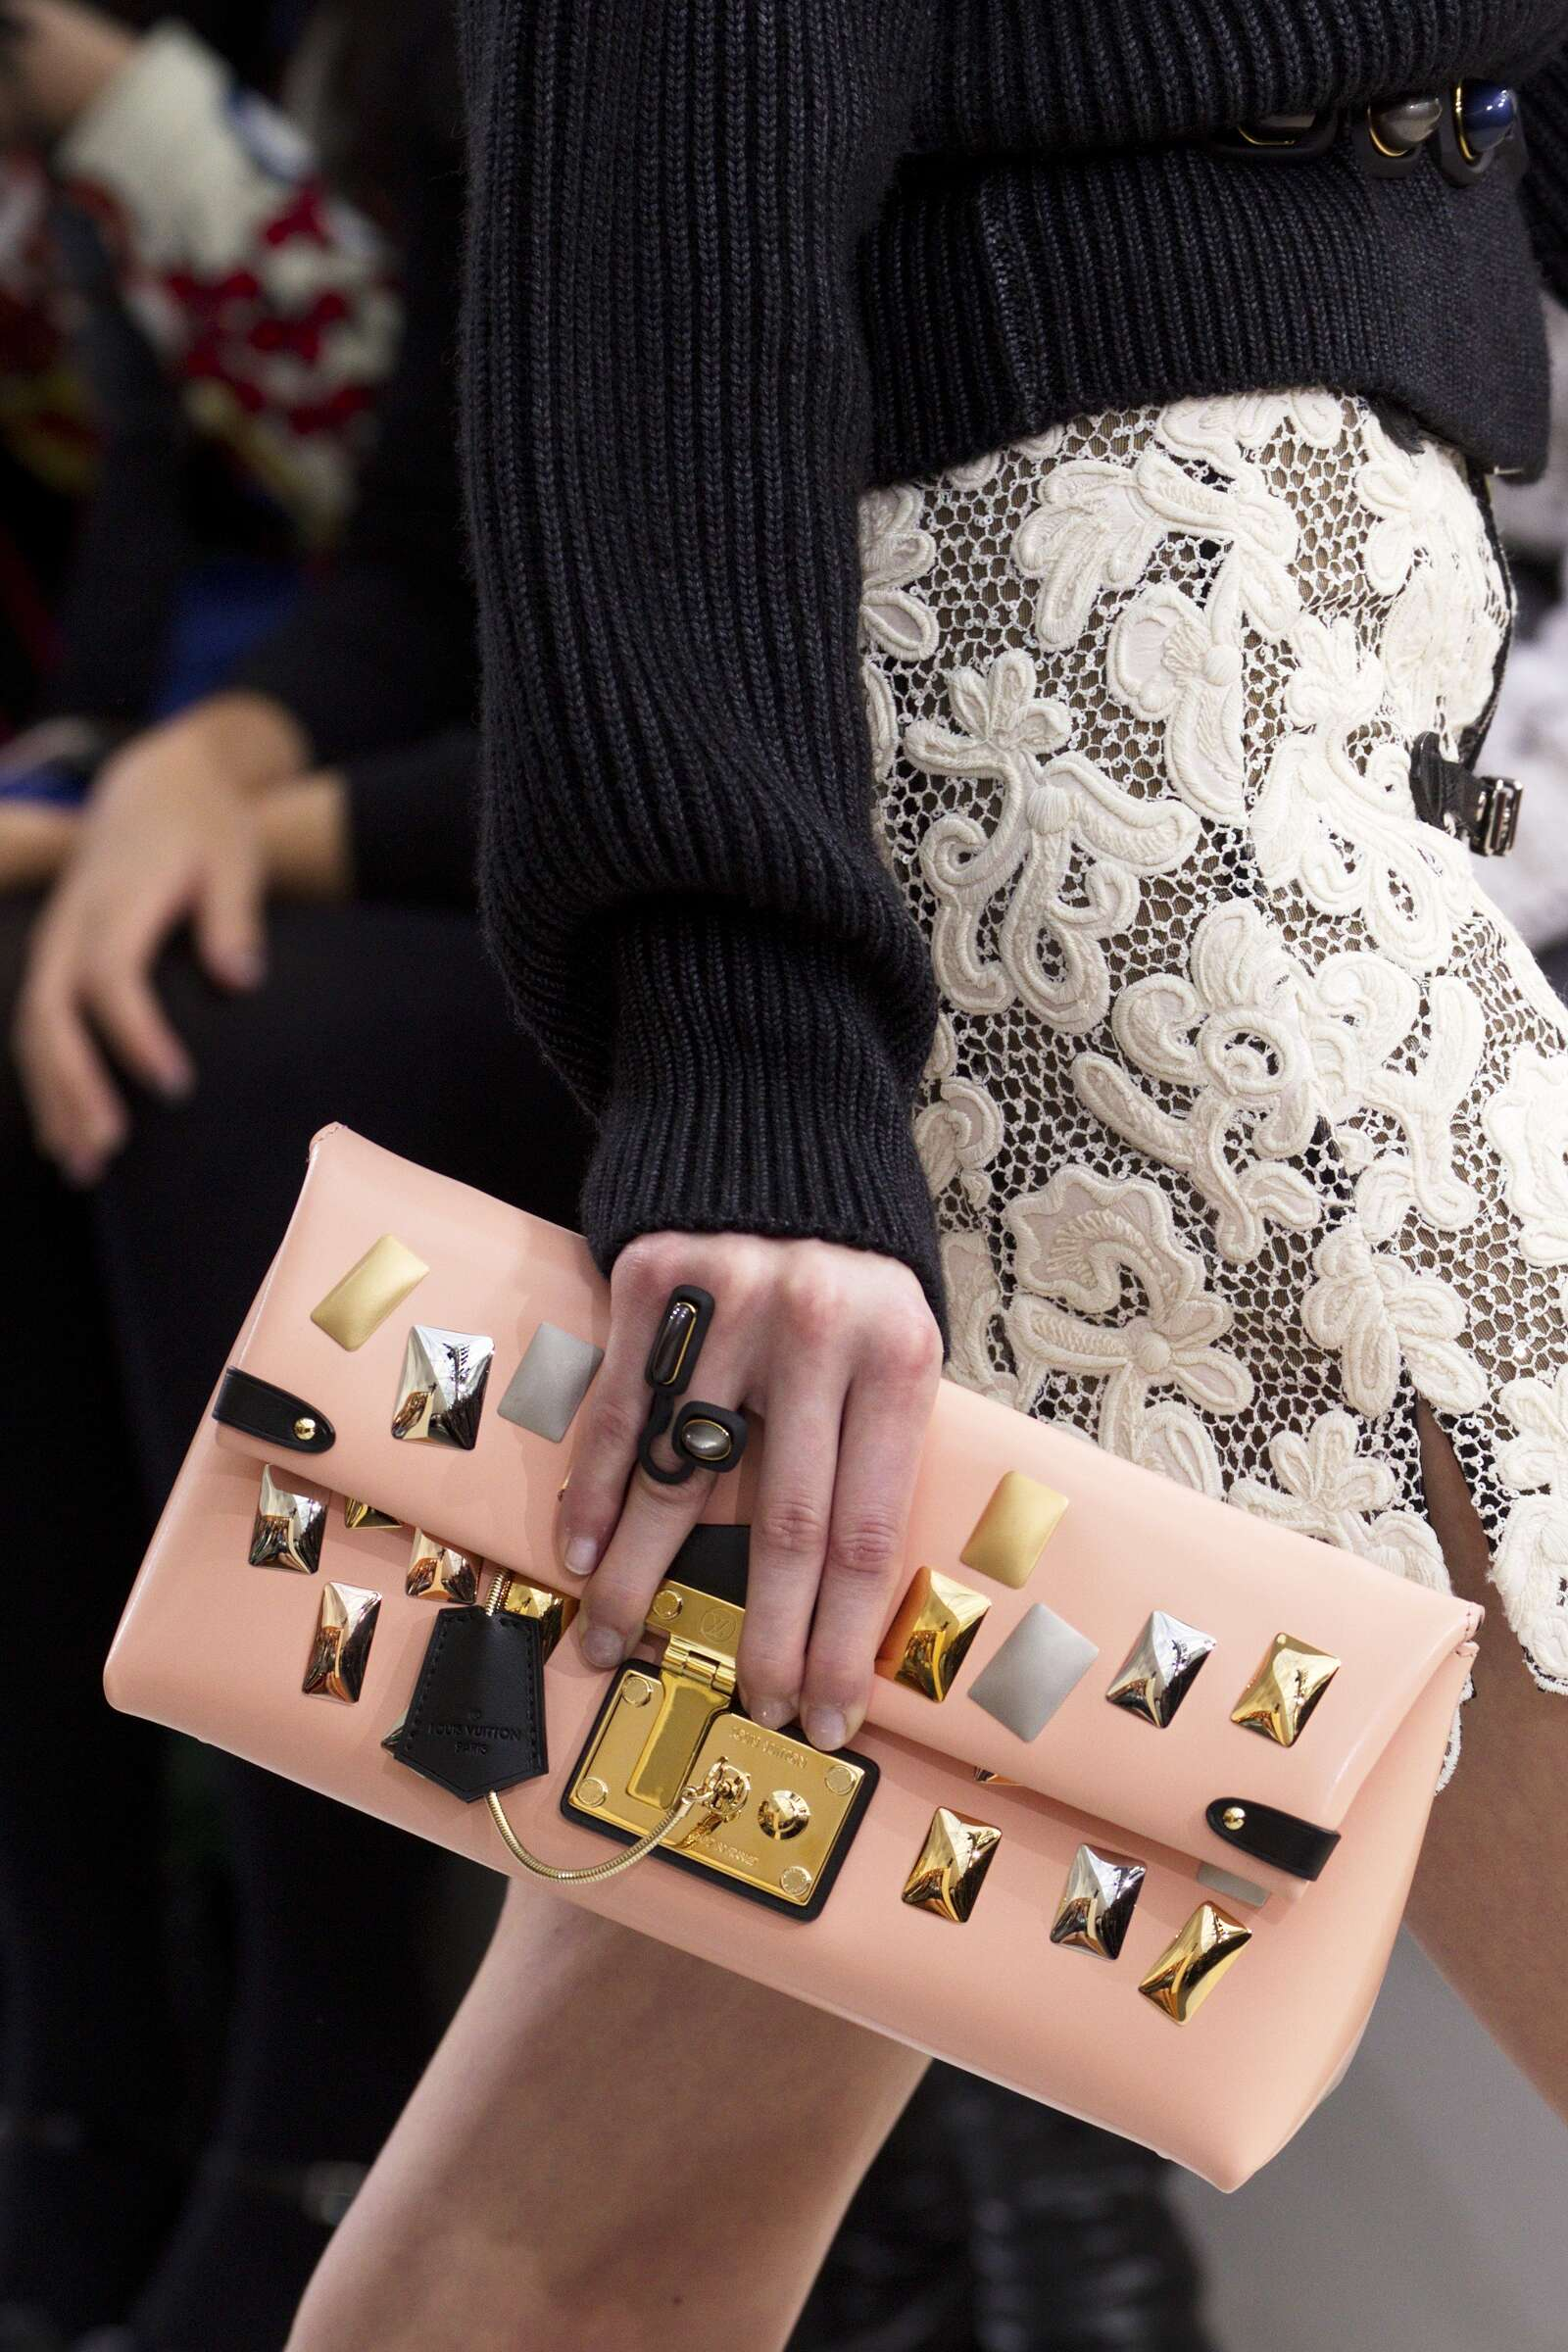 2015 16 Fall Winter Fashion Collection Louis Vuitton Bag Details